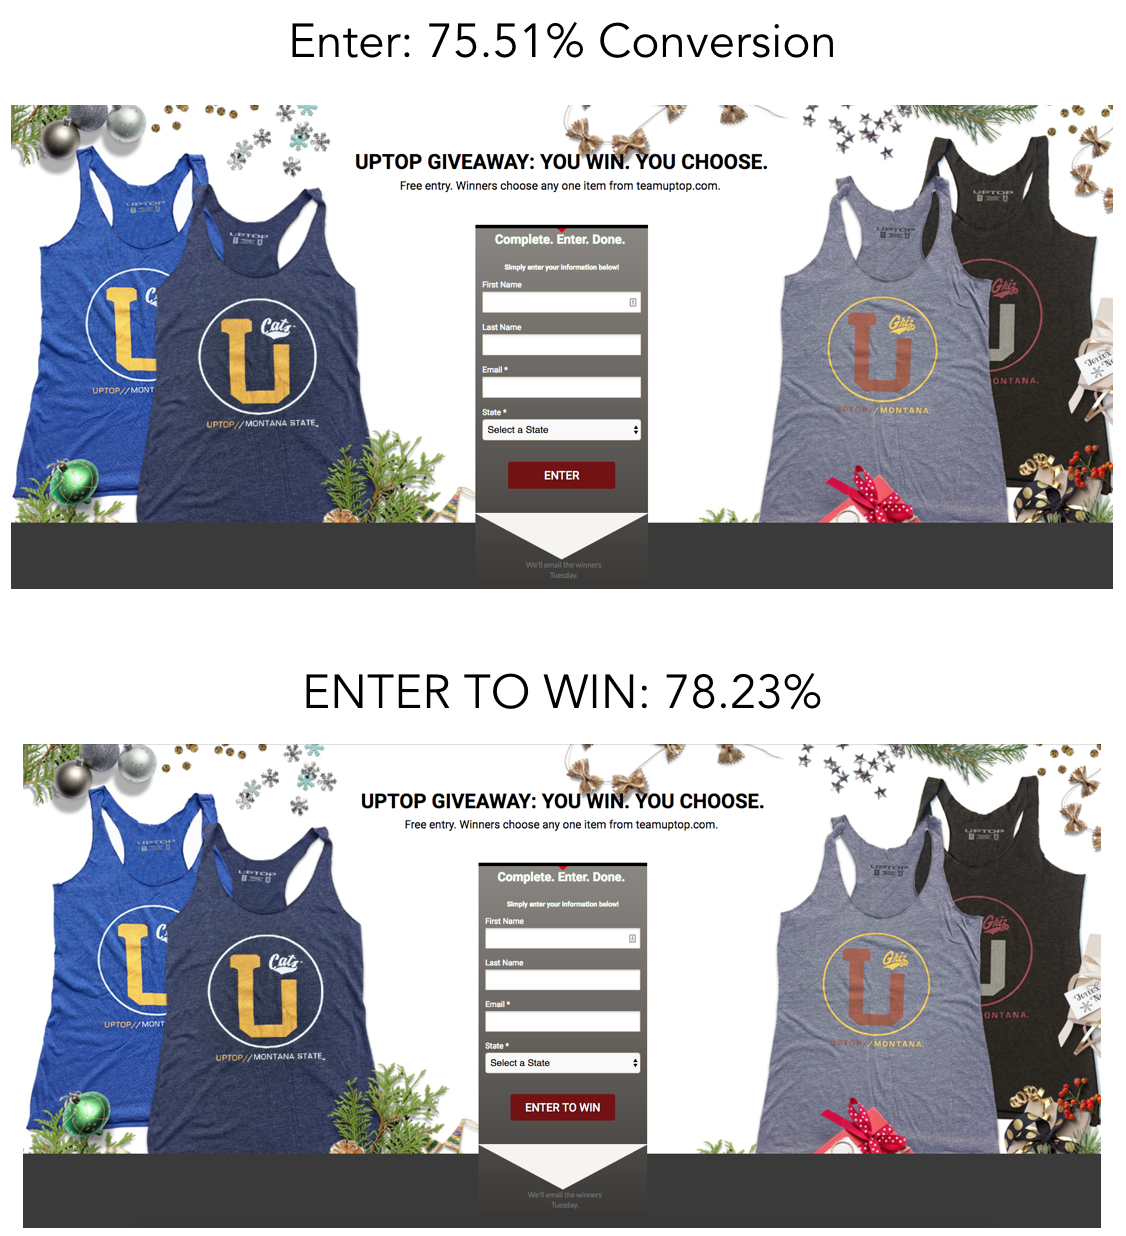 """Image comparing conversion rates when changing CTA button from """"Enter"""" to """"Enter to Win"""""""